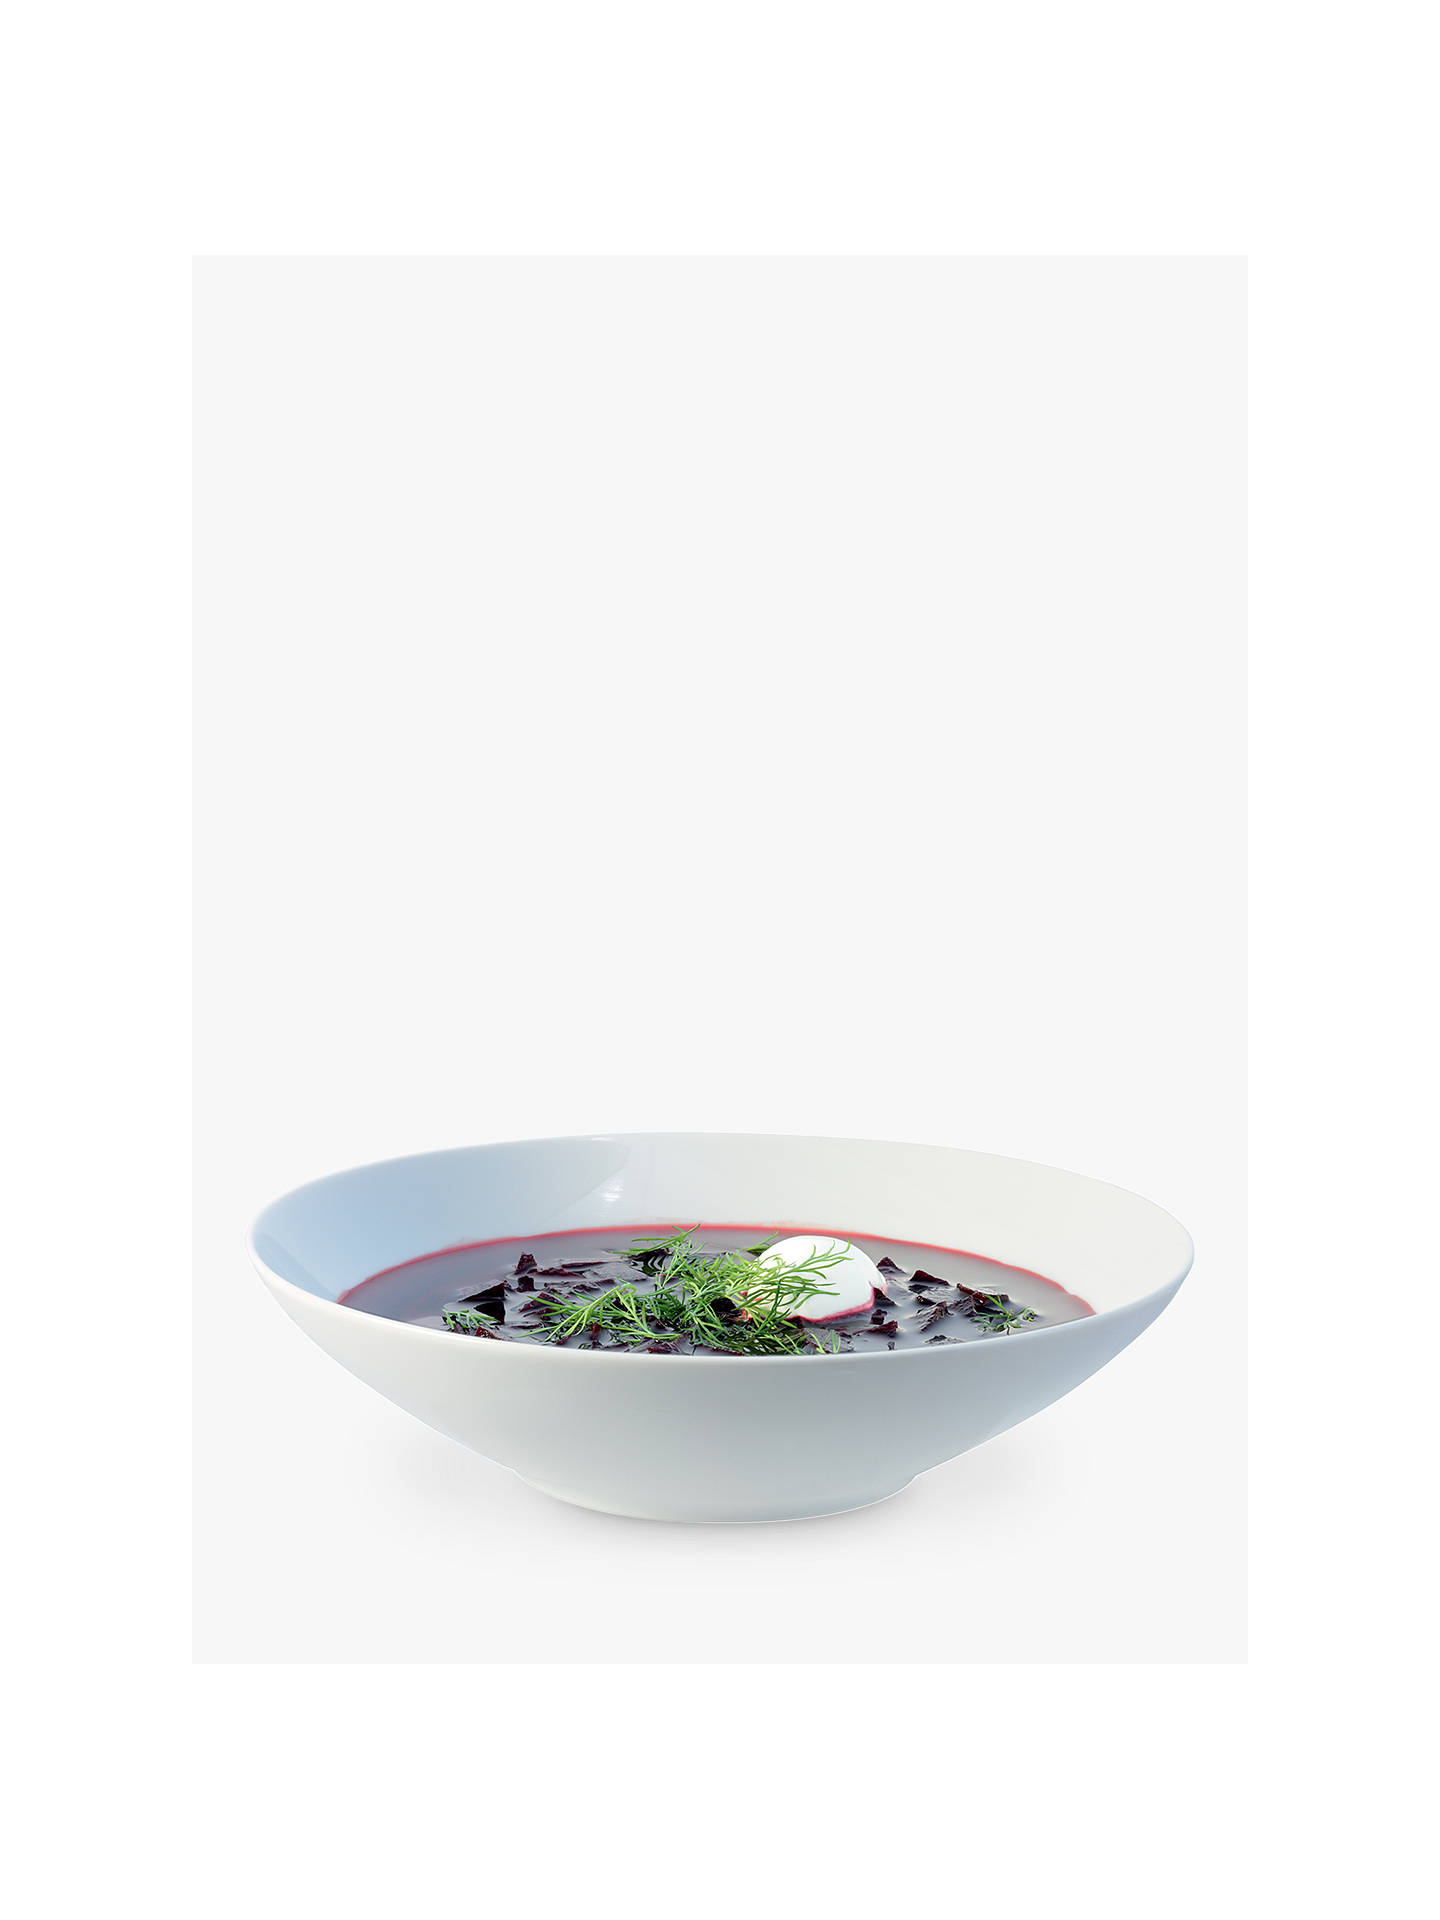 BuyLSA International Dine Bowls, Dia.24cm, White, Set of 4 Online at johnlewis.com